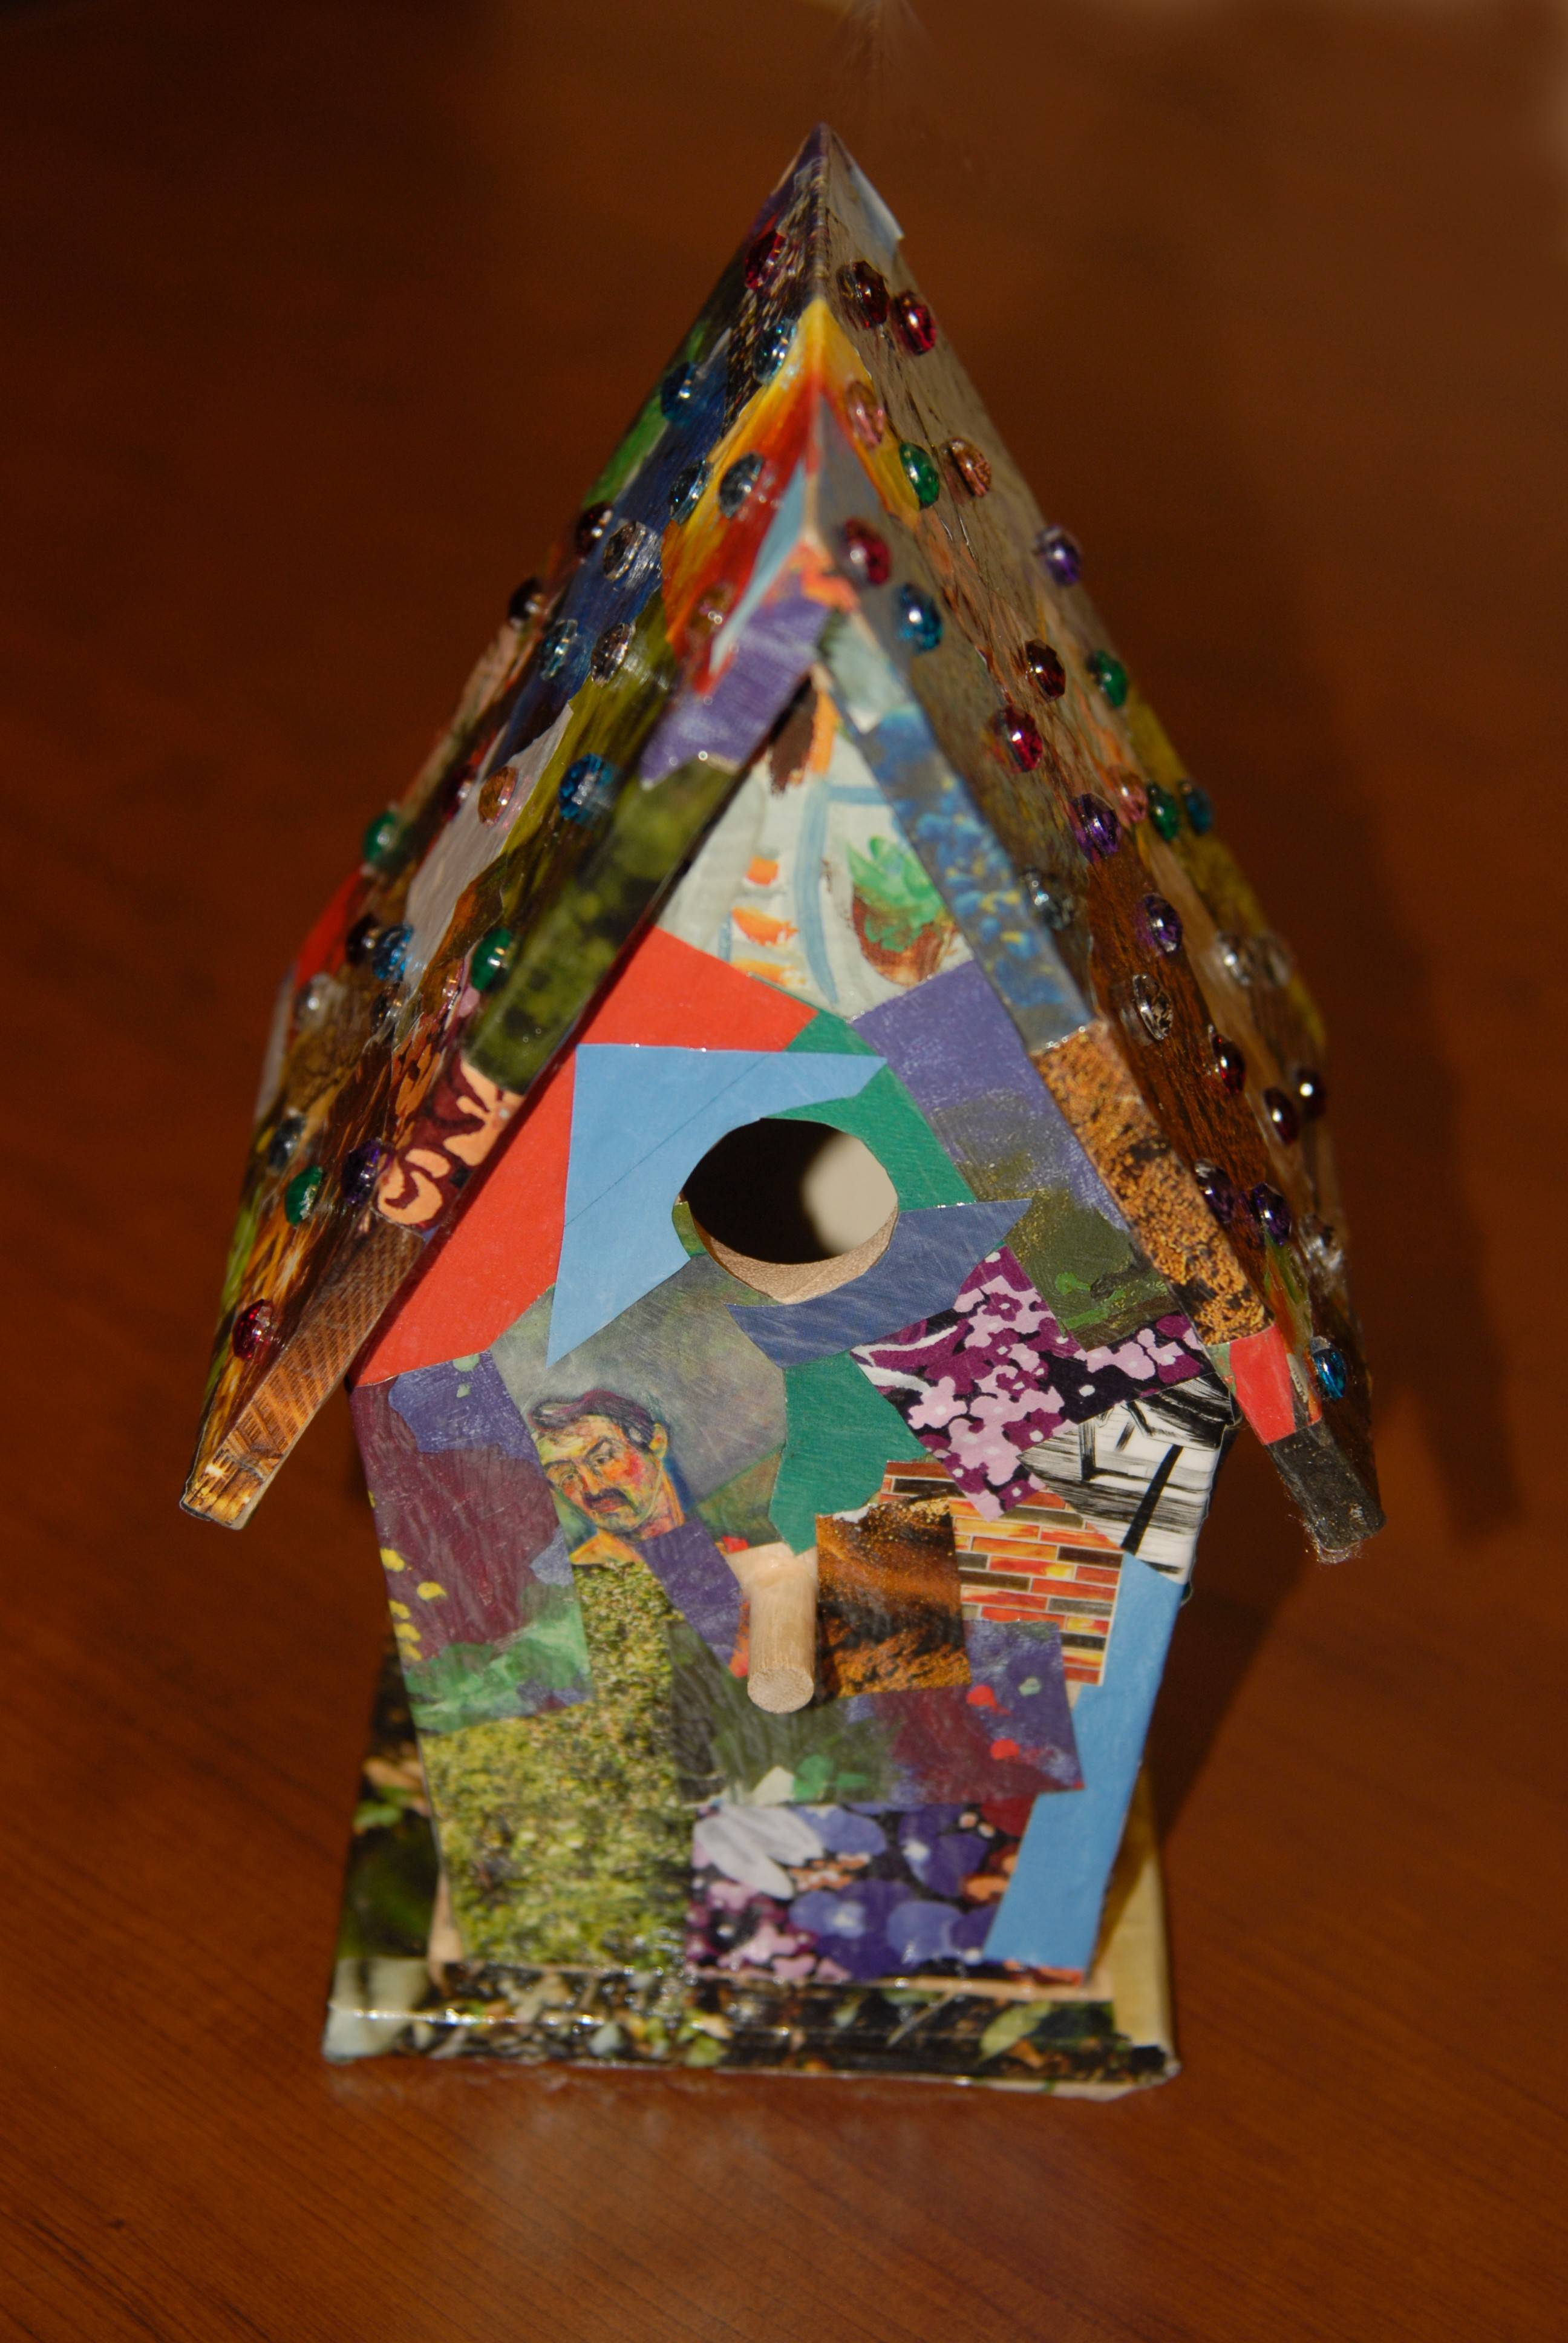 These photos show suggestions for creating a birdhouse.